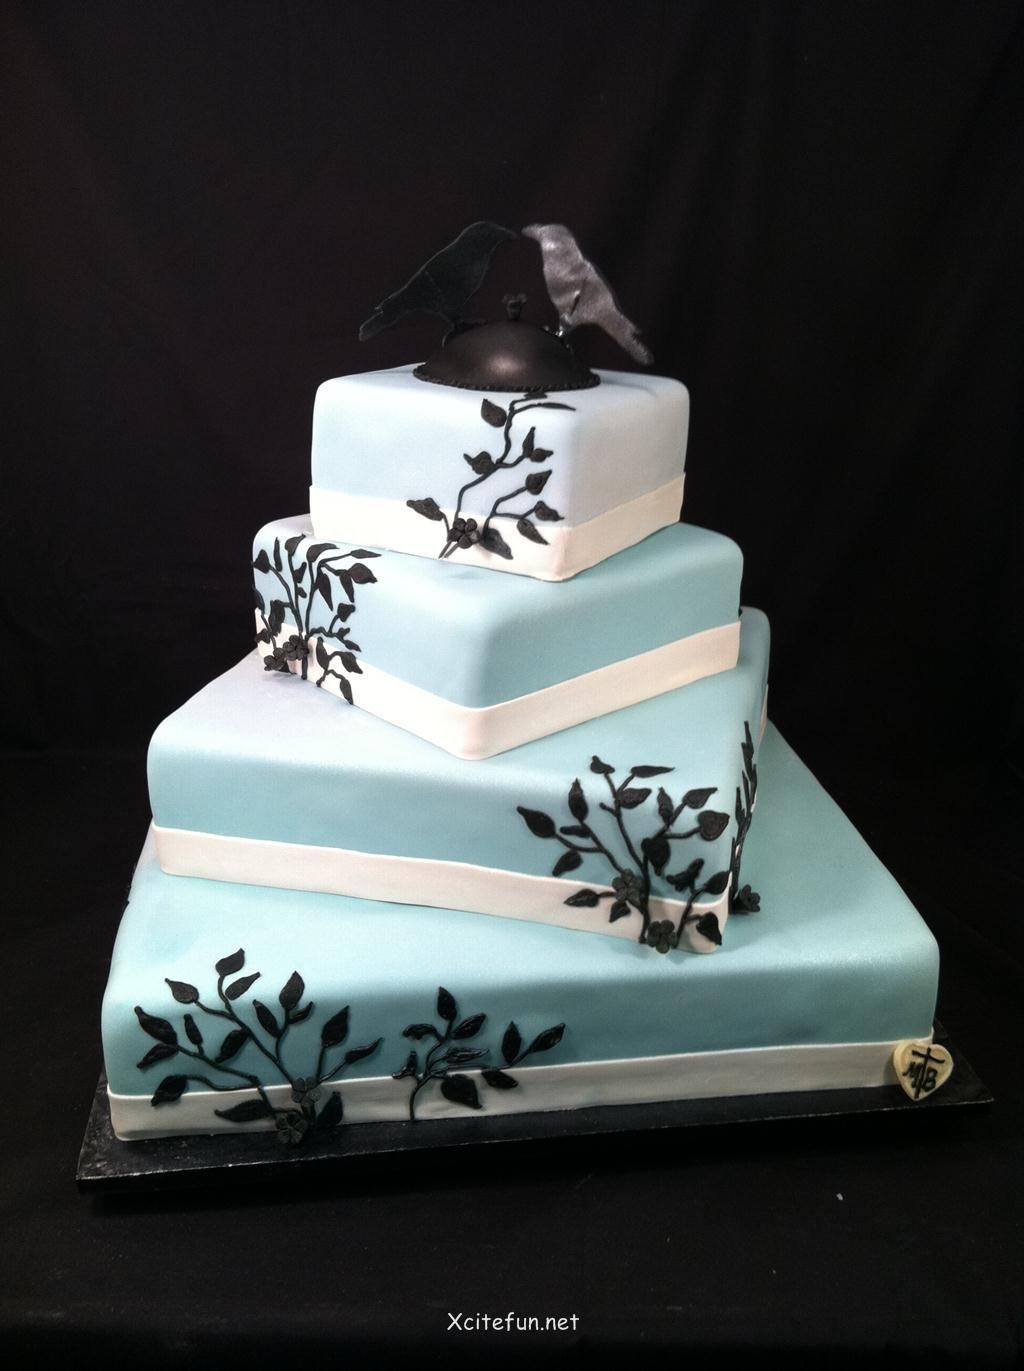 Cake Decorating Ideas To Your Baker Below Are Some Helpful